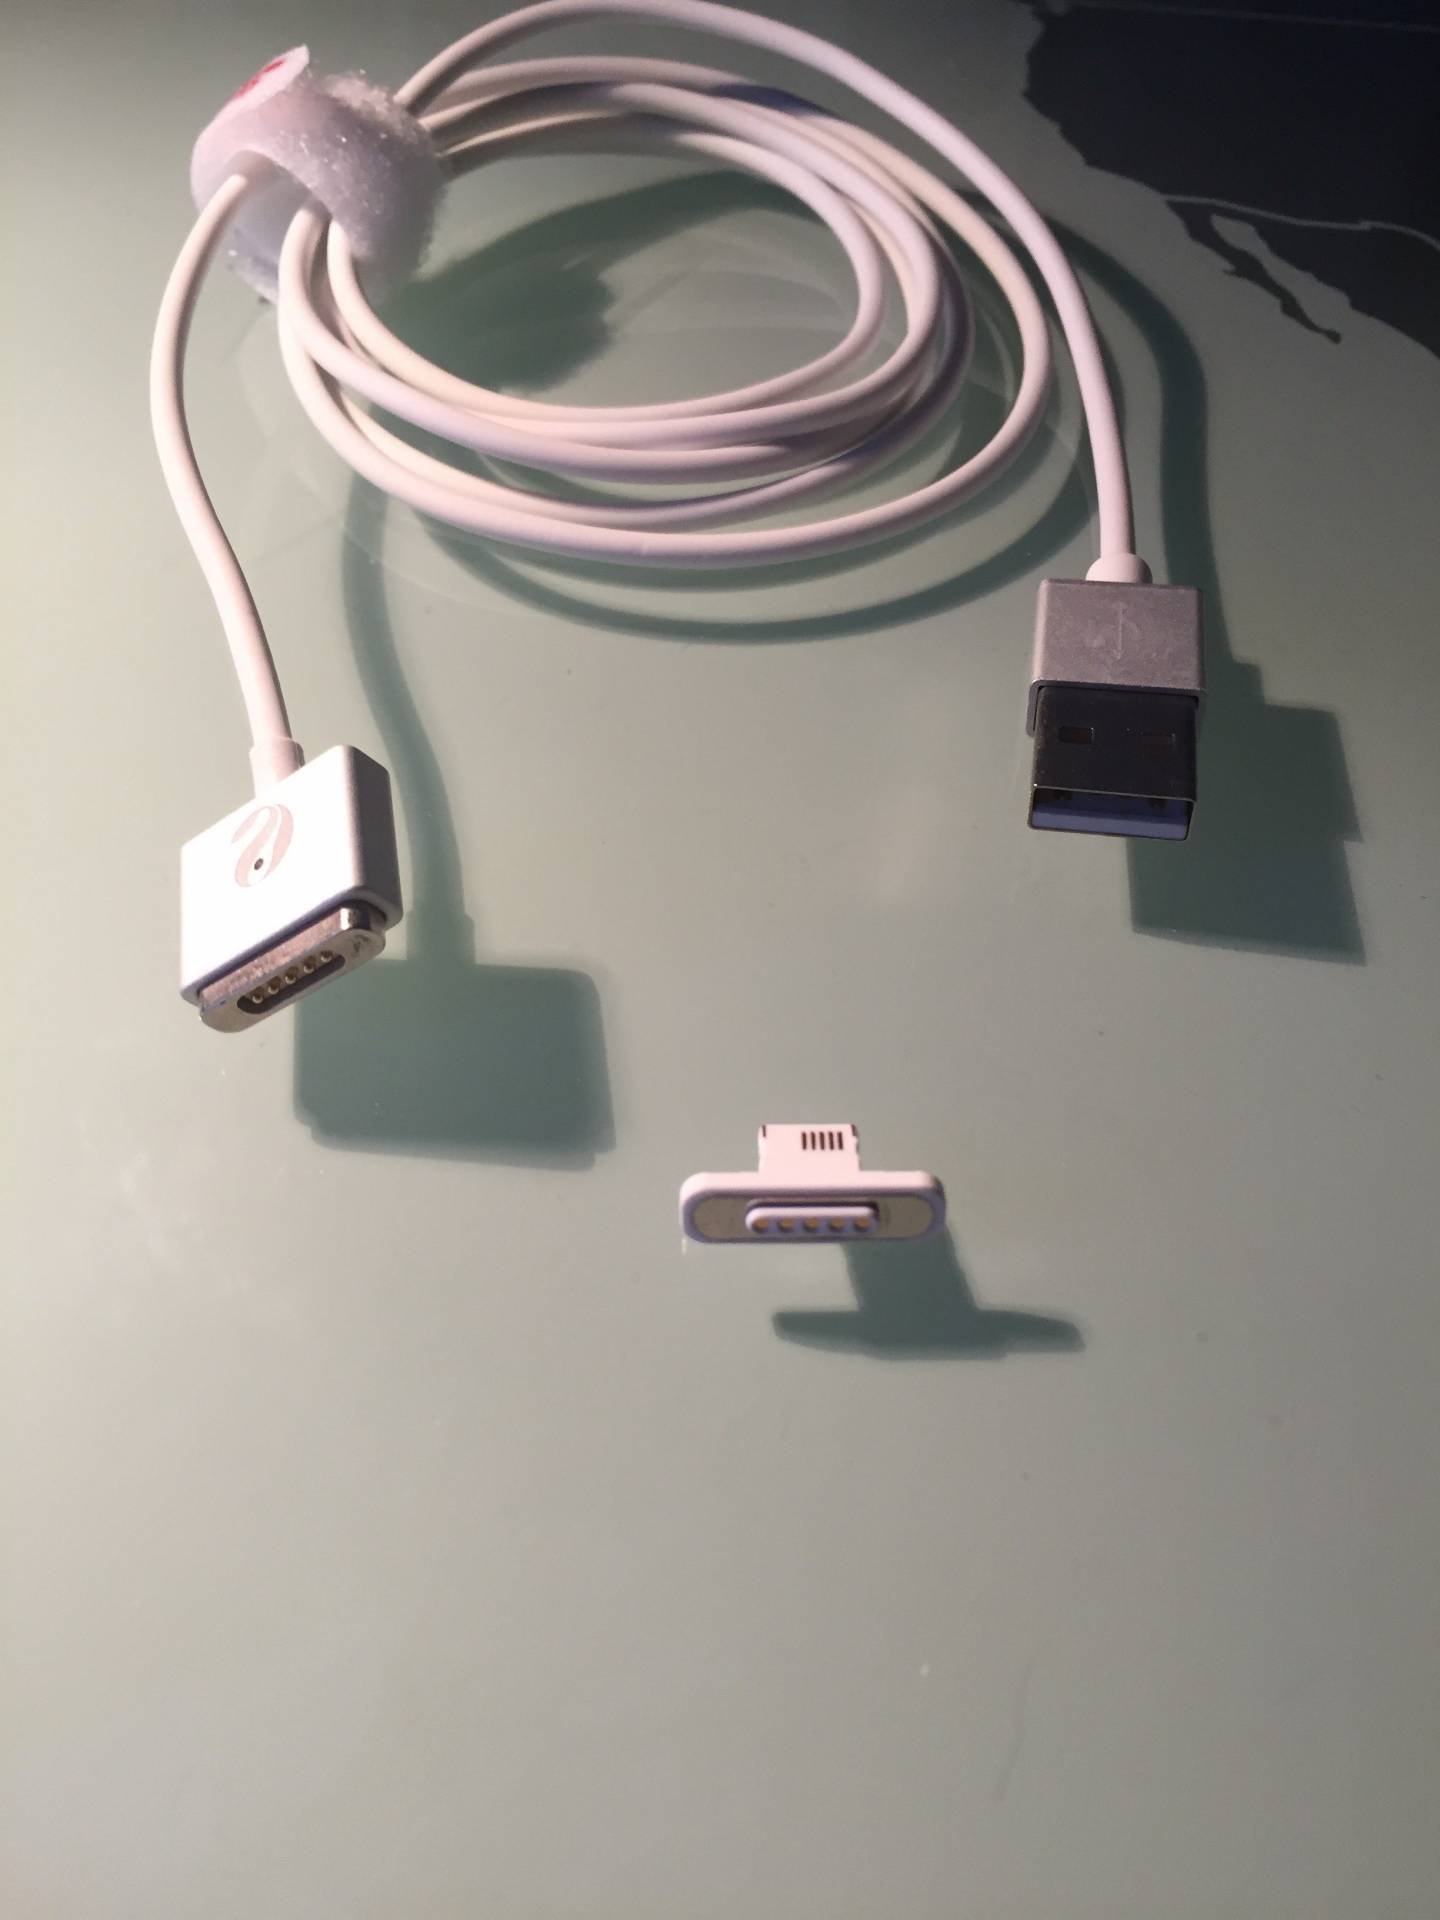 magsafe adattatore lightning Entalent, il cavetto USB magnetico per iPhone in stile MacBook